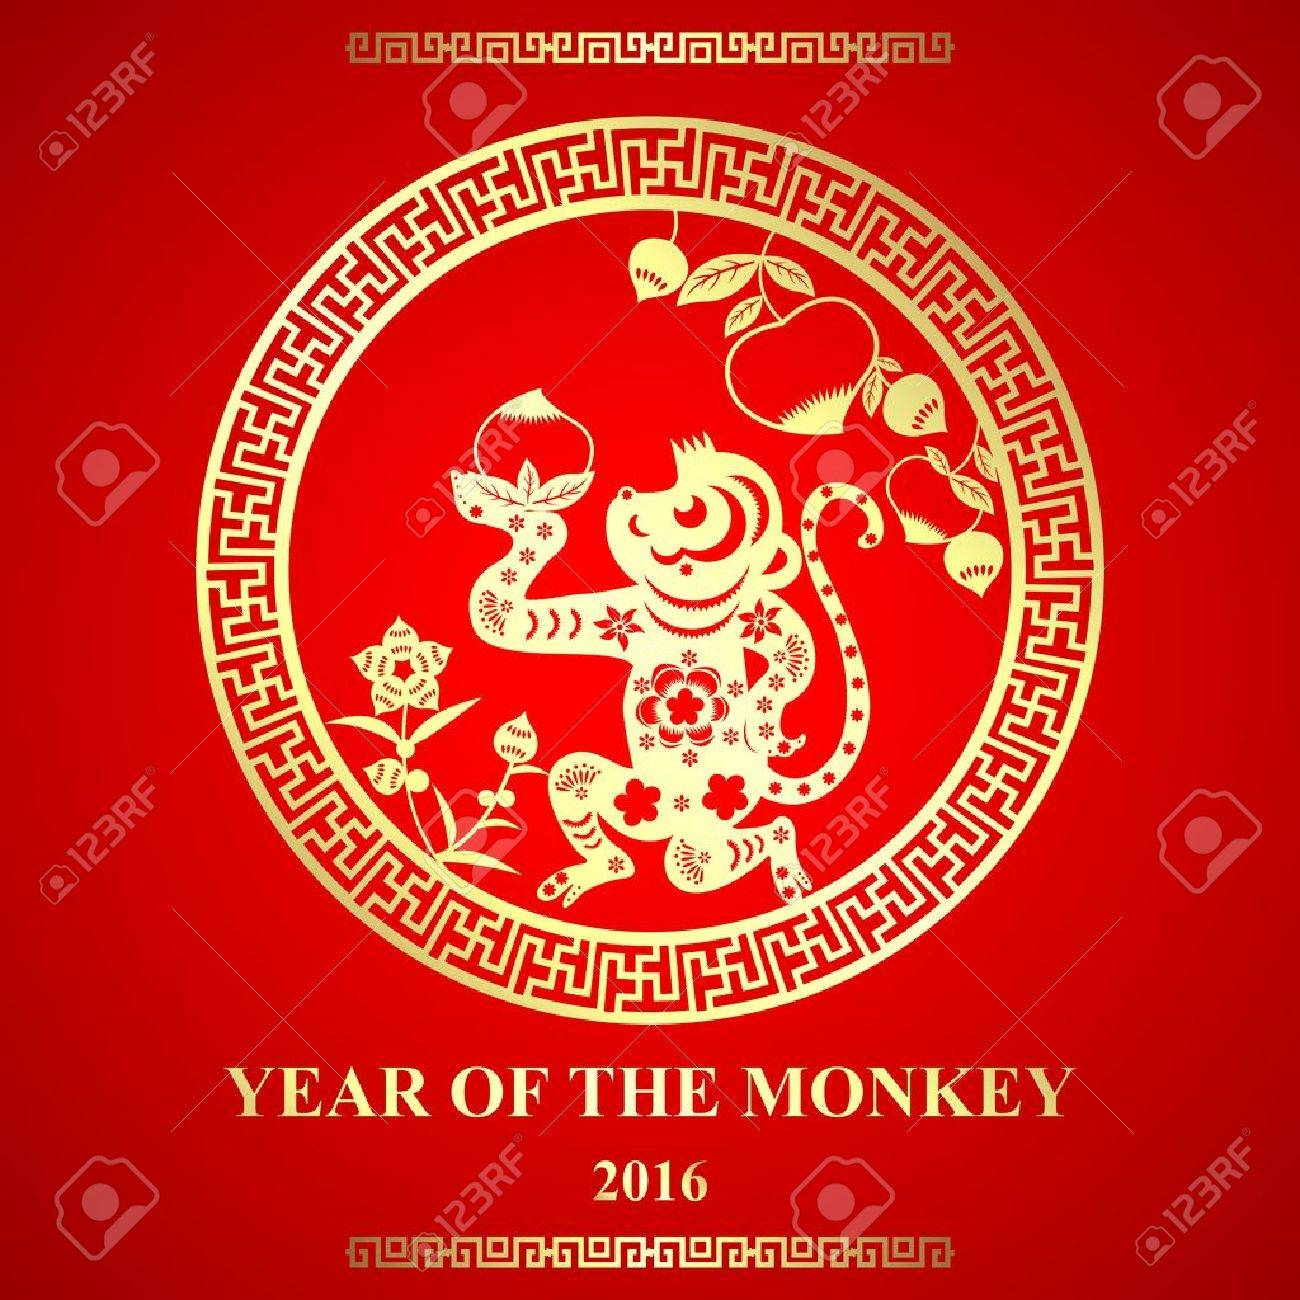 vector chinese paper cutting style monkey ornament for lunar new year year of monkey stock - Chinese New Year Year Of The Monkey